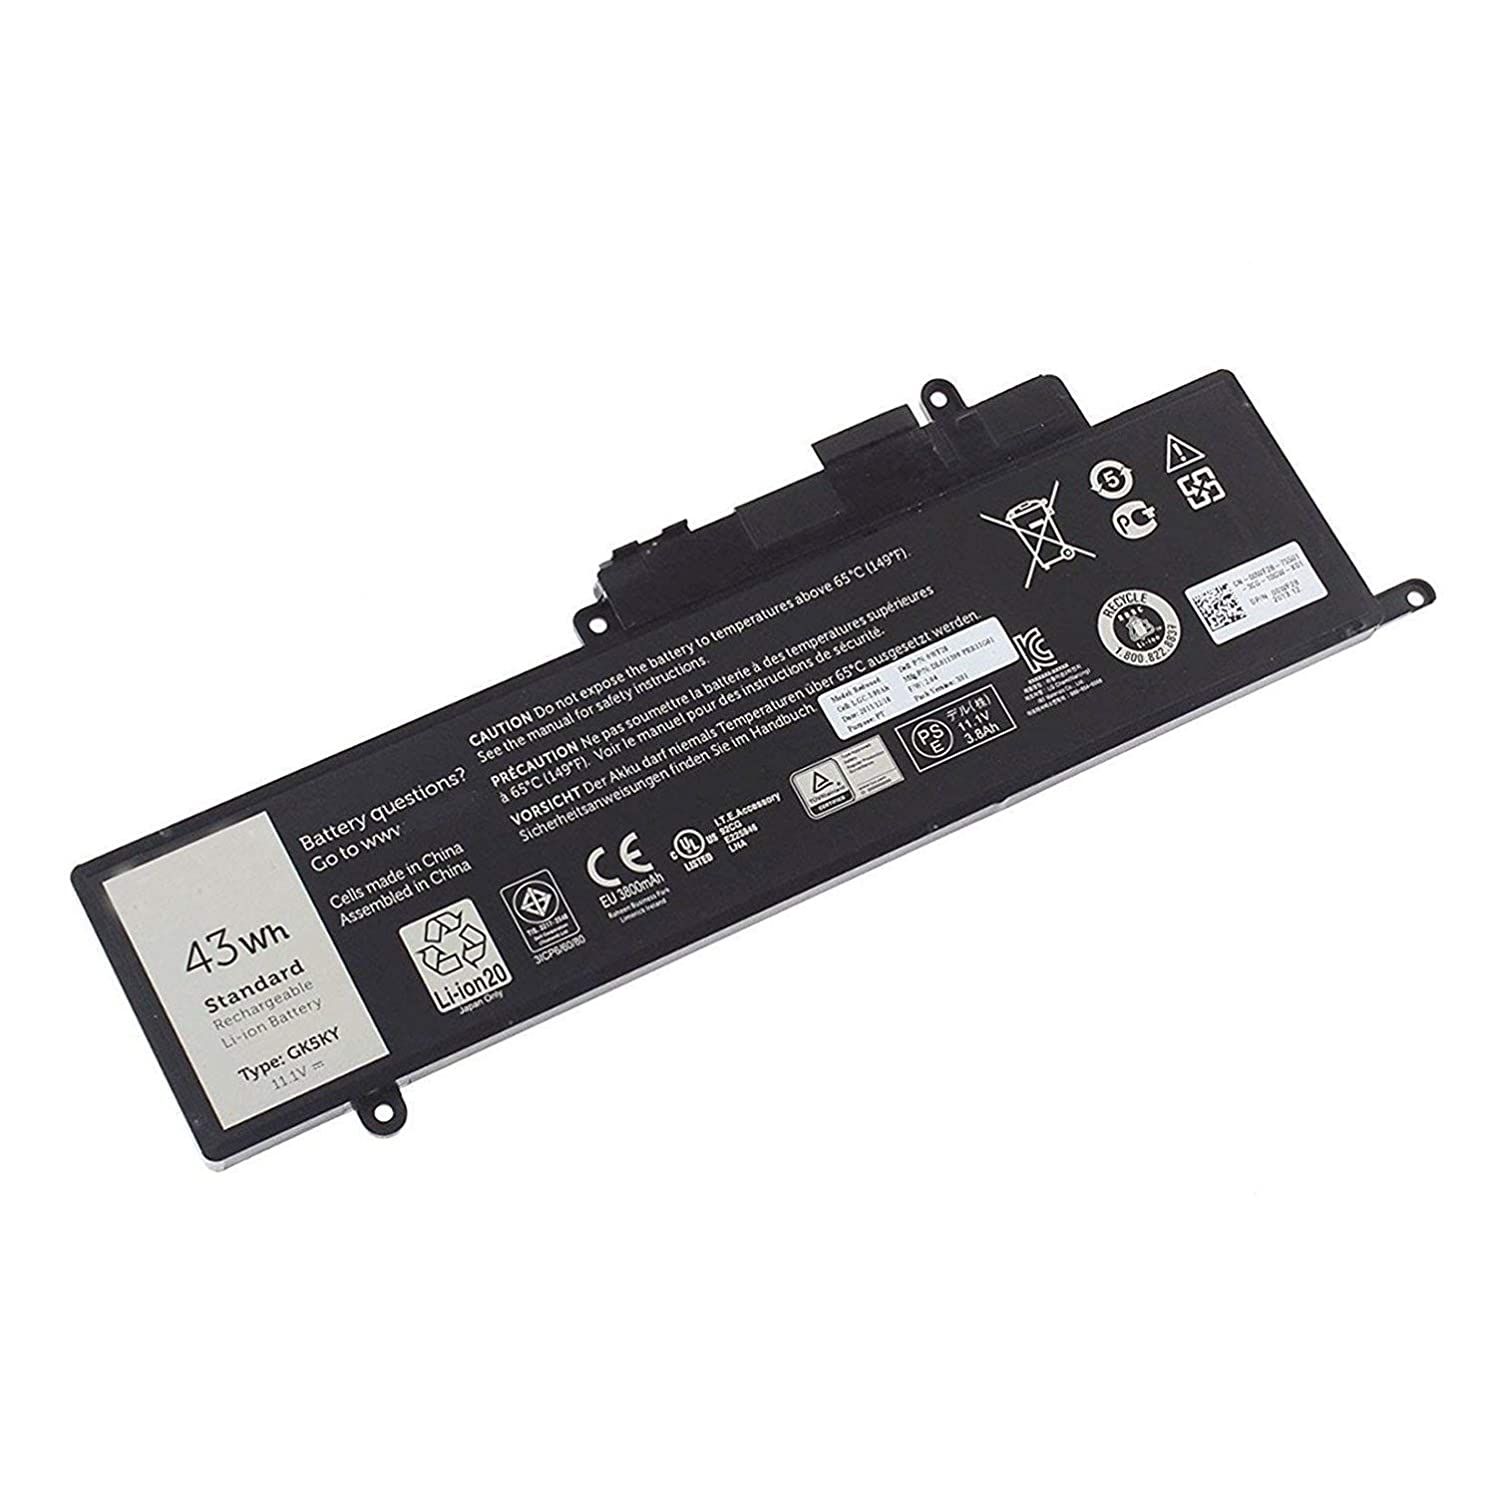 43Wh Laptop Battery for Dell Inspiron 11 3000 3147 3148 Inspiron 13-7347 13-7348 13-7352 GK5KY P20T 04K8YH 92NCT 092NCT 4K8YH